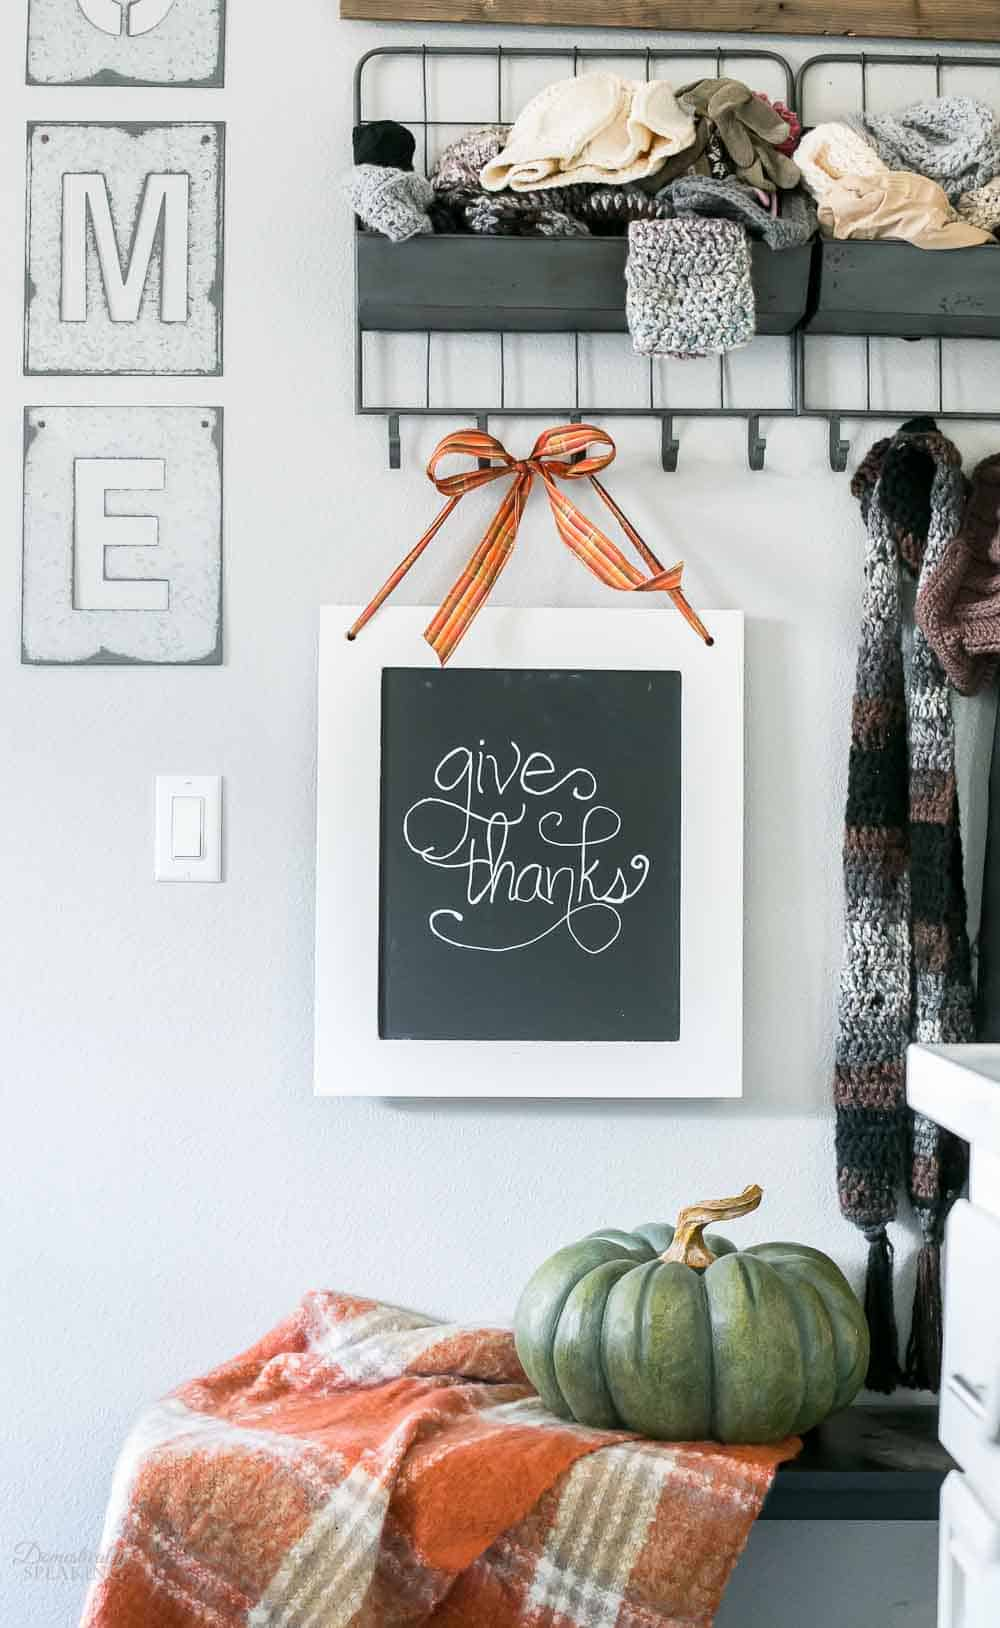 Repurpose a cabinet door into a Chalkboard Sign for fall - all the details how to make your own here!